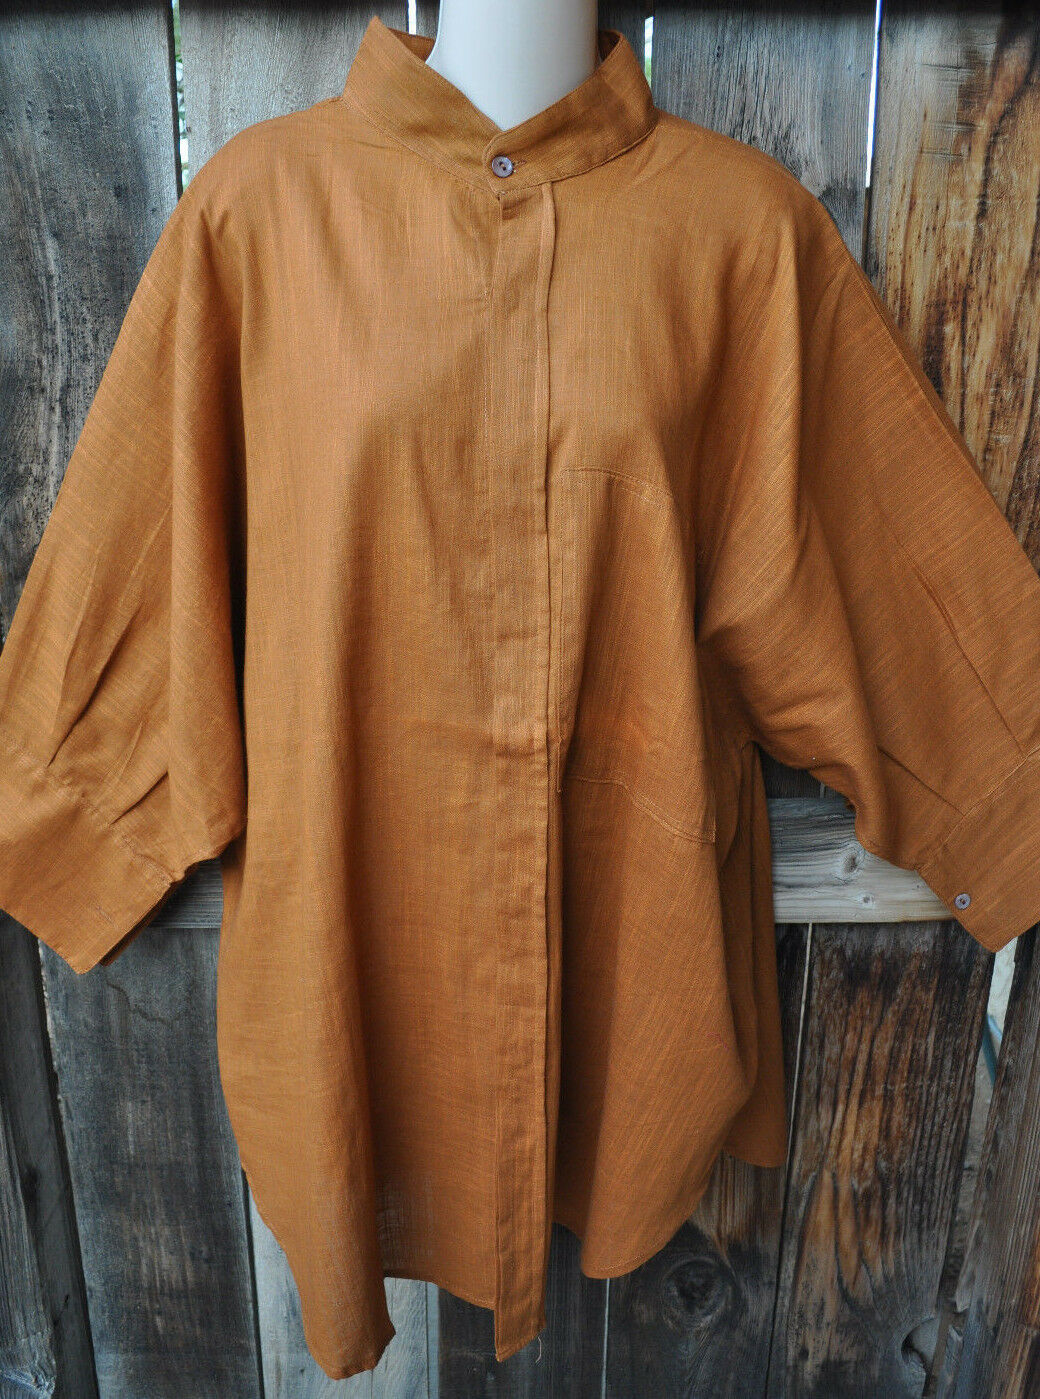 DILEMMA ART TO WEAR HAND WOVEN 100% ORGANIC COTTON BIG SHIRT IN SOLID TOBACCO,OS